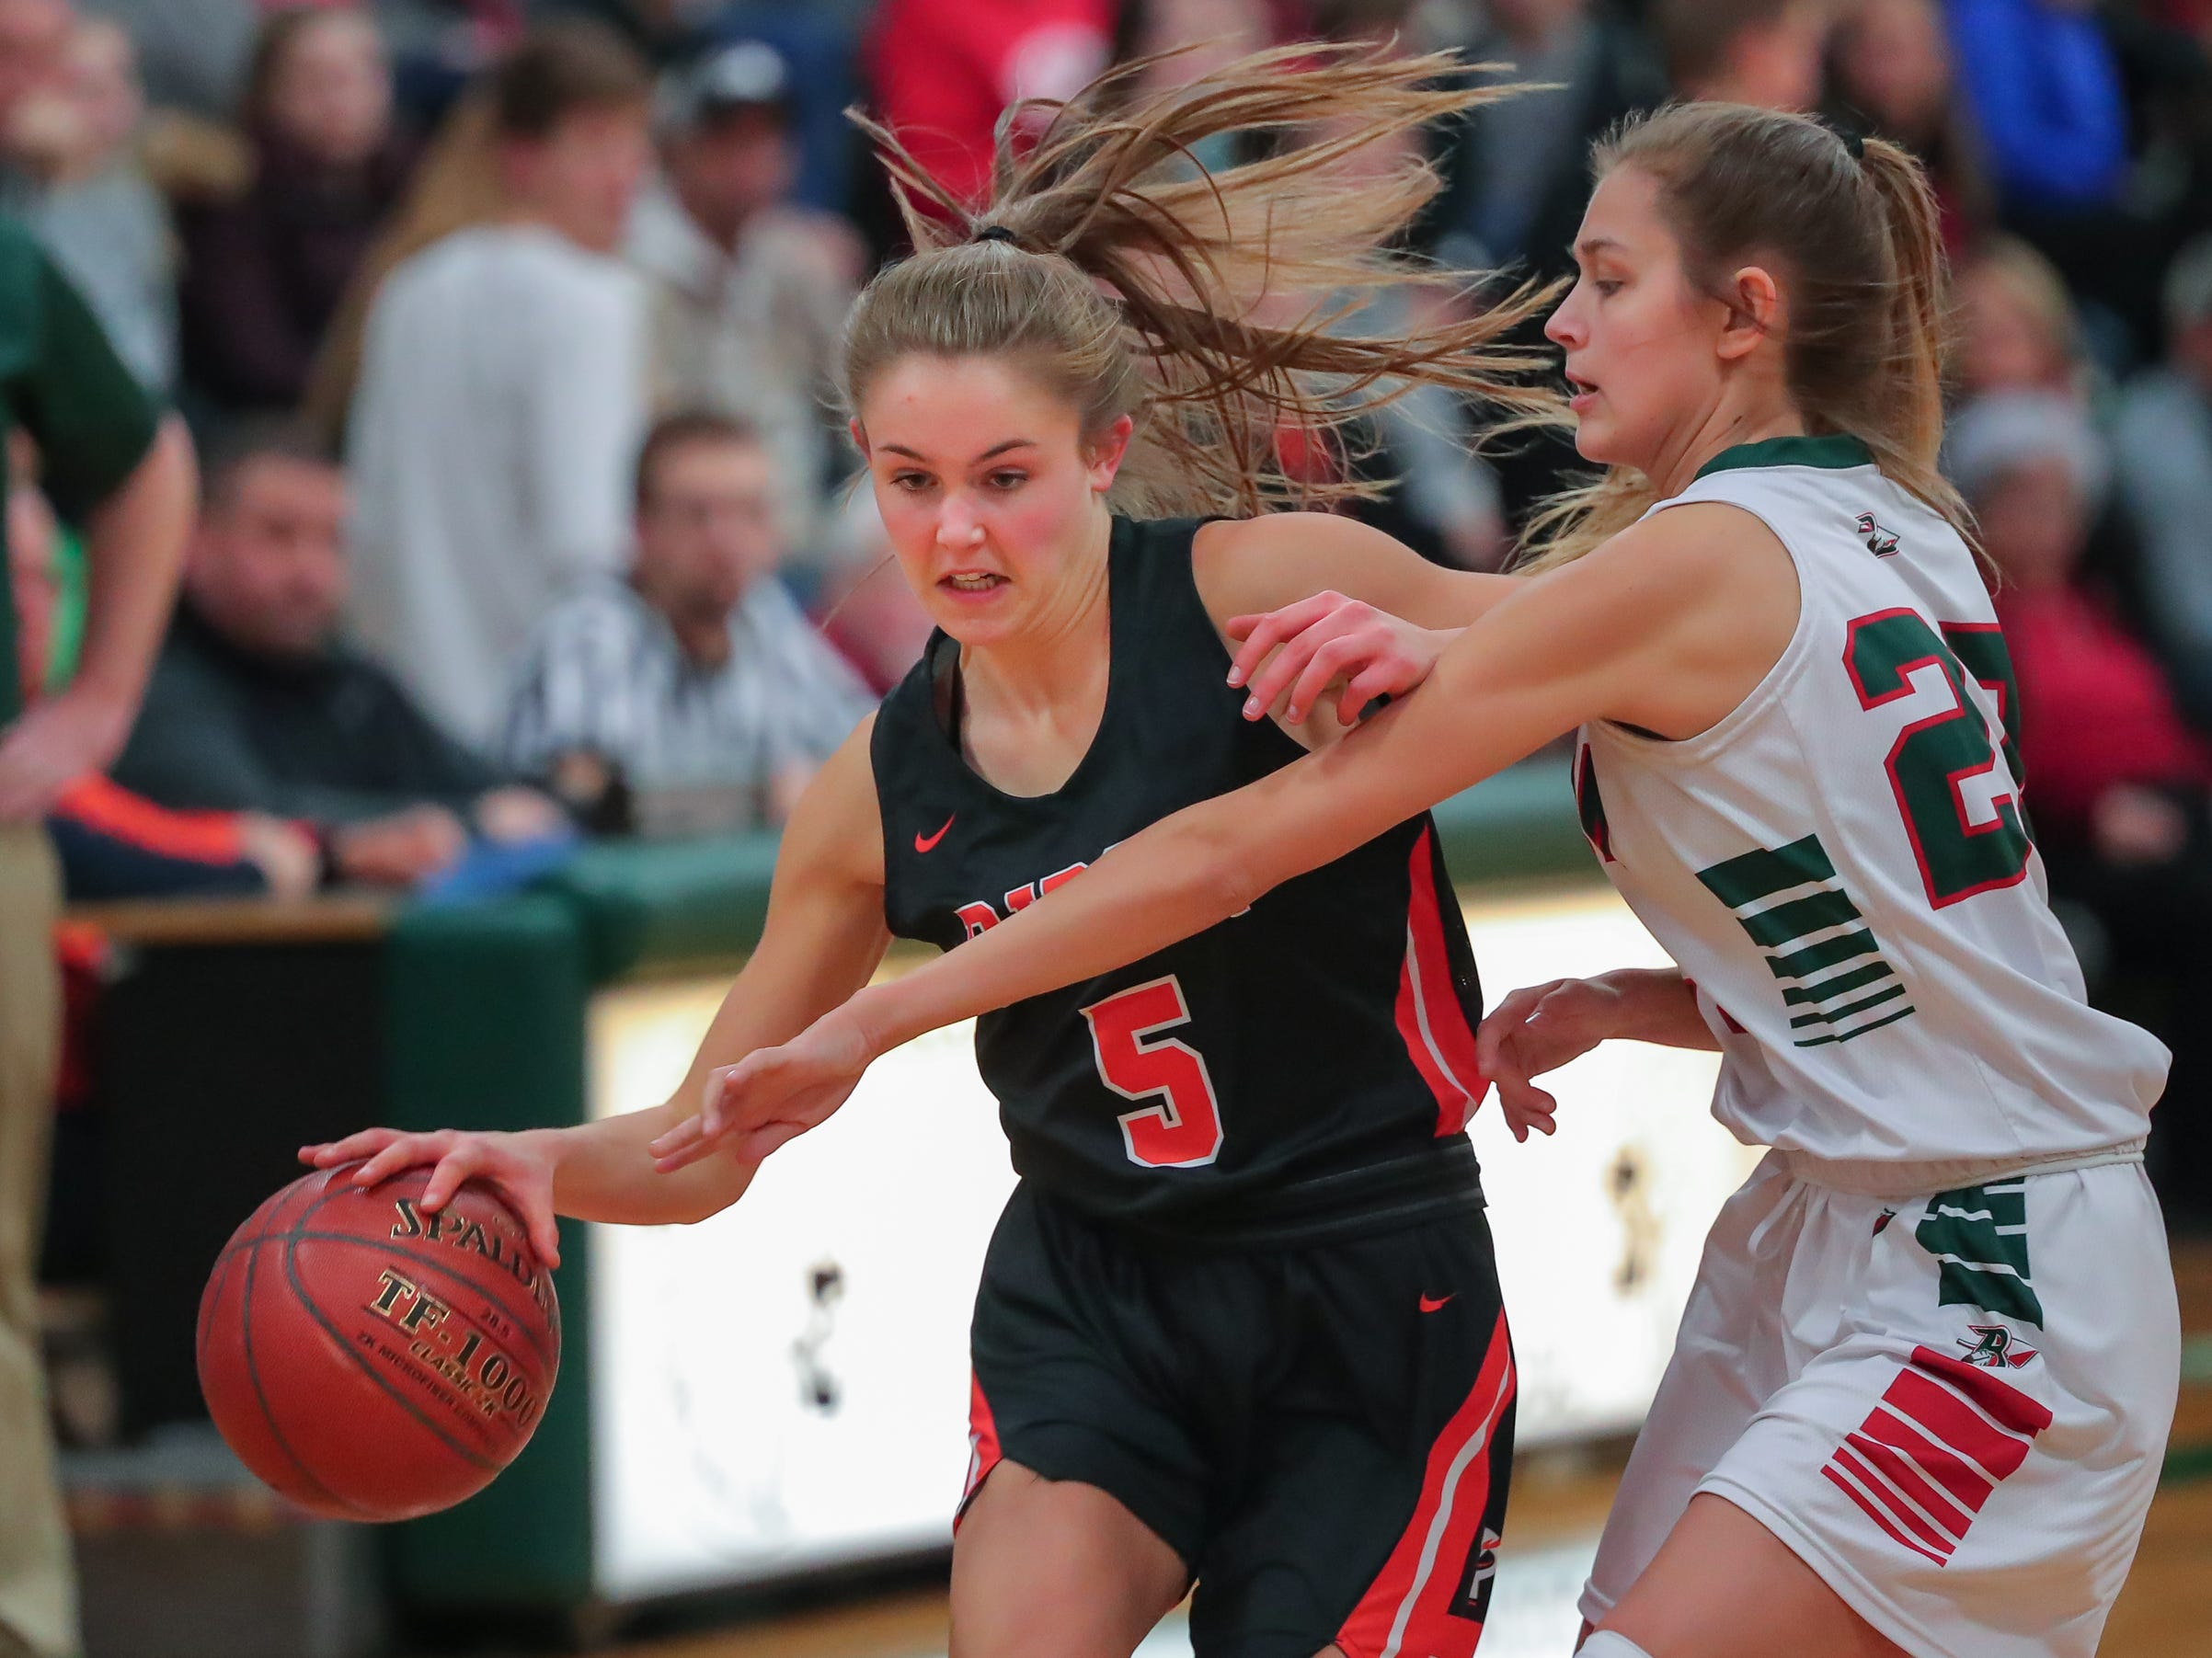 Hadley Neper (5) of Ripon drives around Emily Klawitter (23) of Berlin. The Berlin Indians hosted the Ripon Tigers in an East Central Conference girls basketball matchup Friday evening, December 21, 2018.